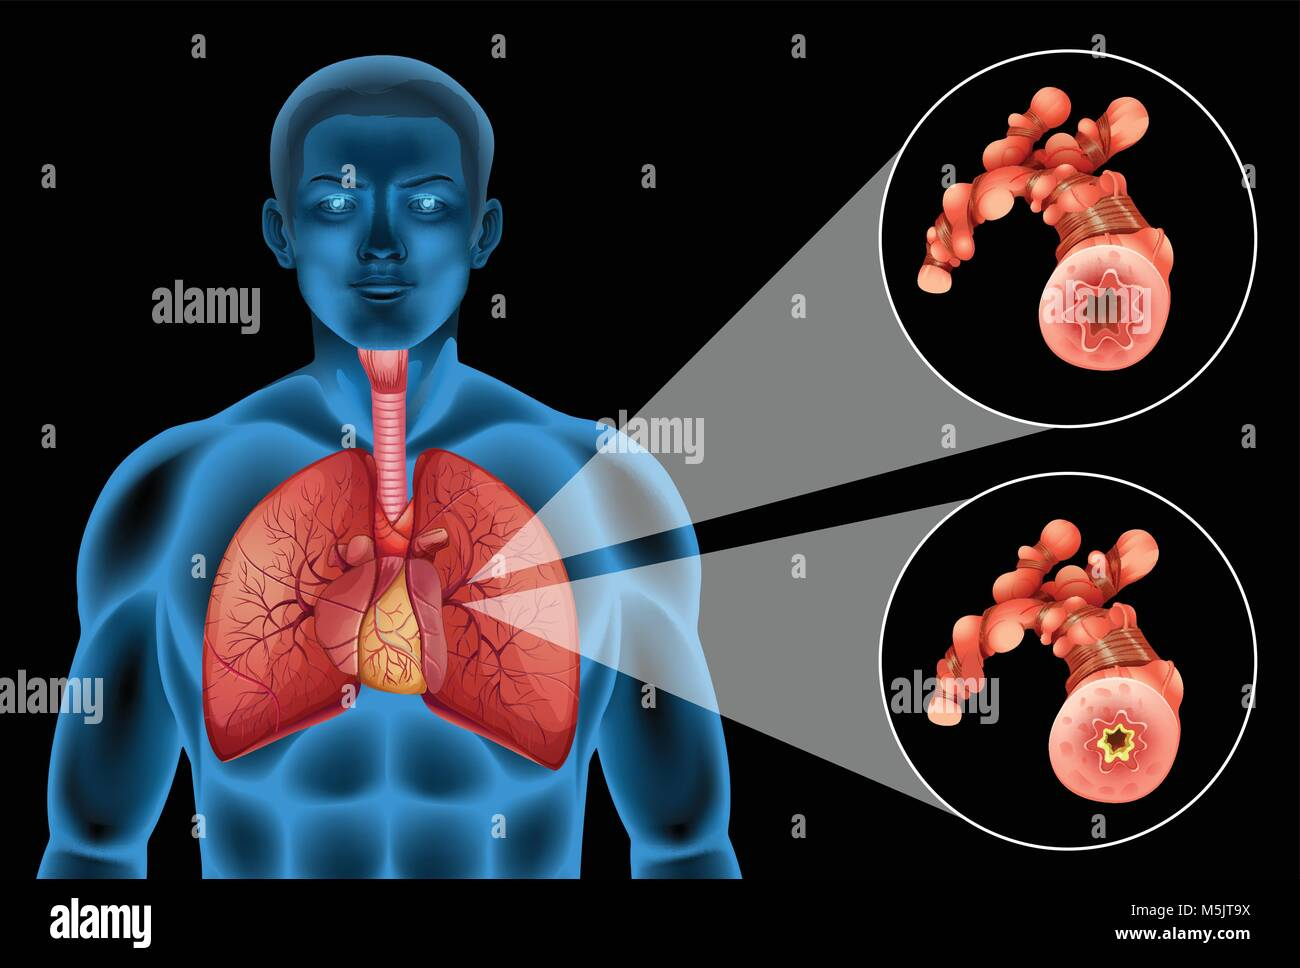 Diagram Showing Human Lungs And Disease Illustration Stock Vector